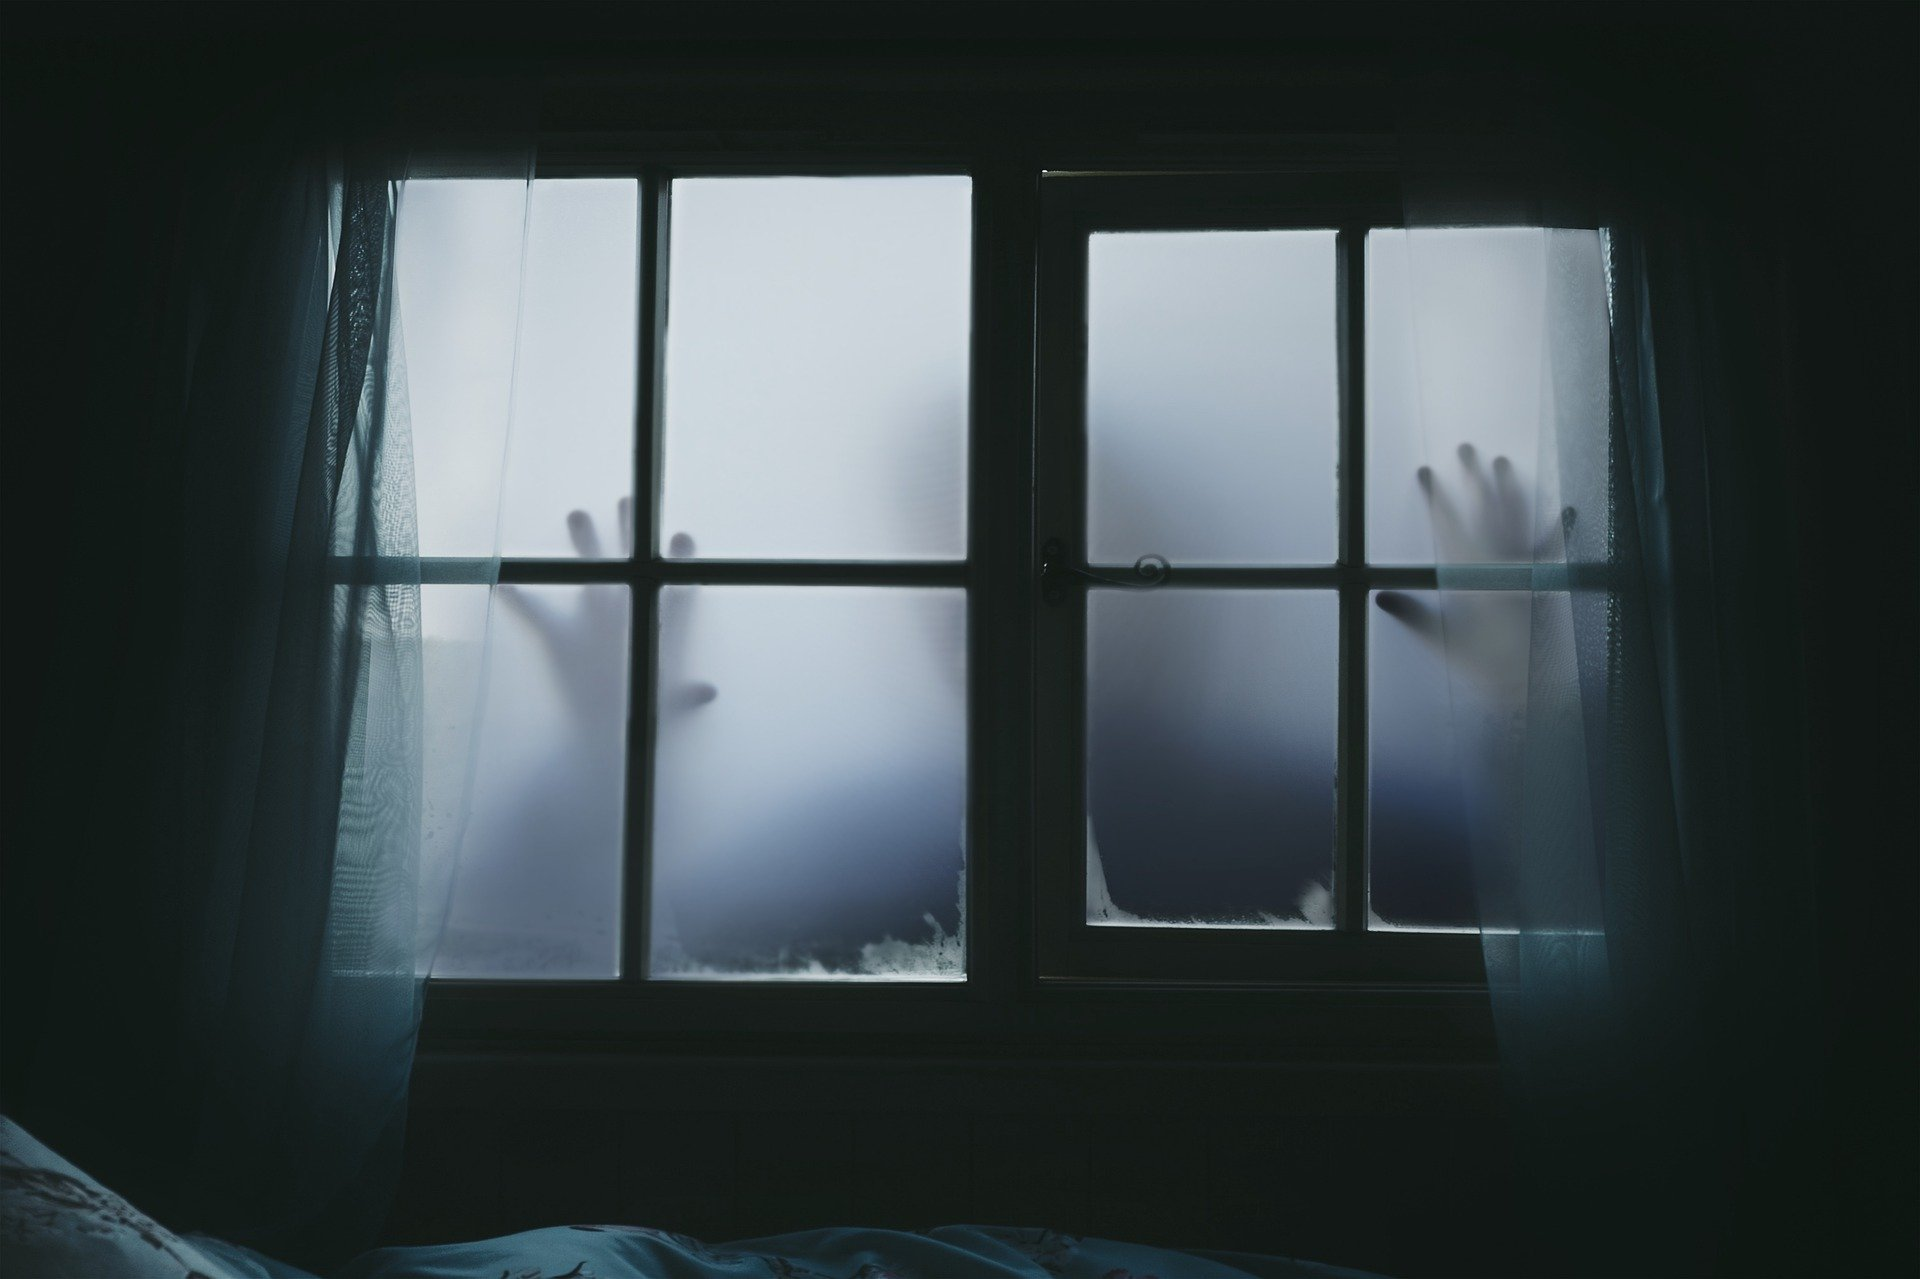 fear during lucid dreaming